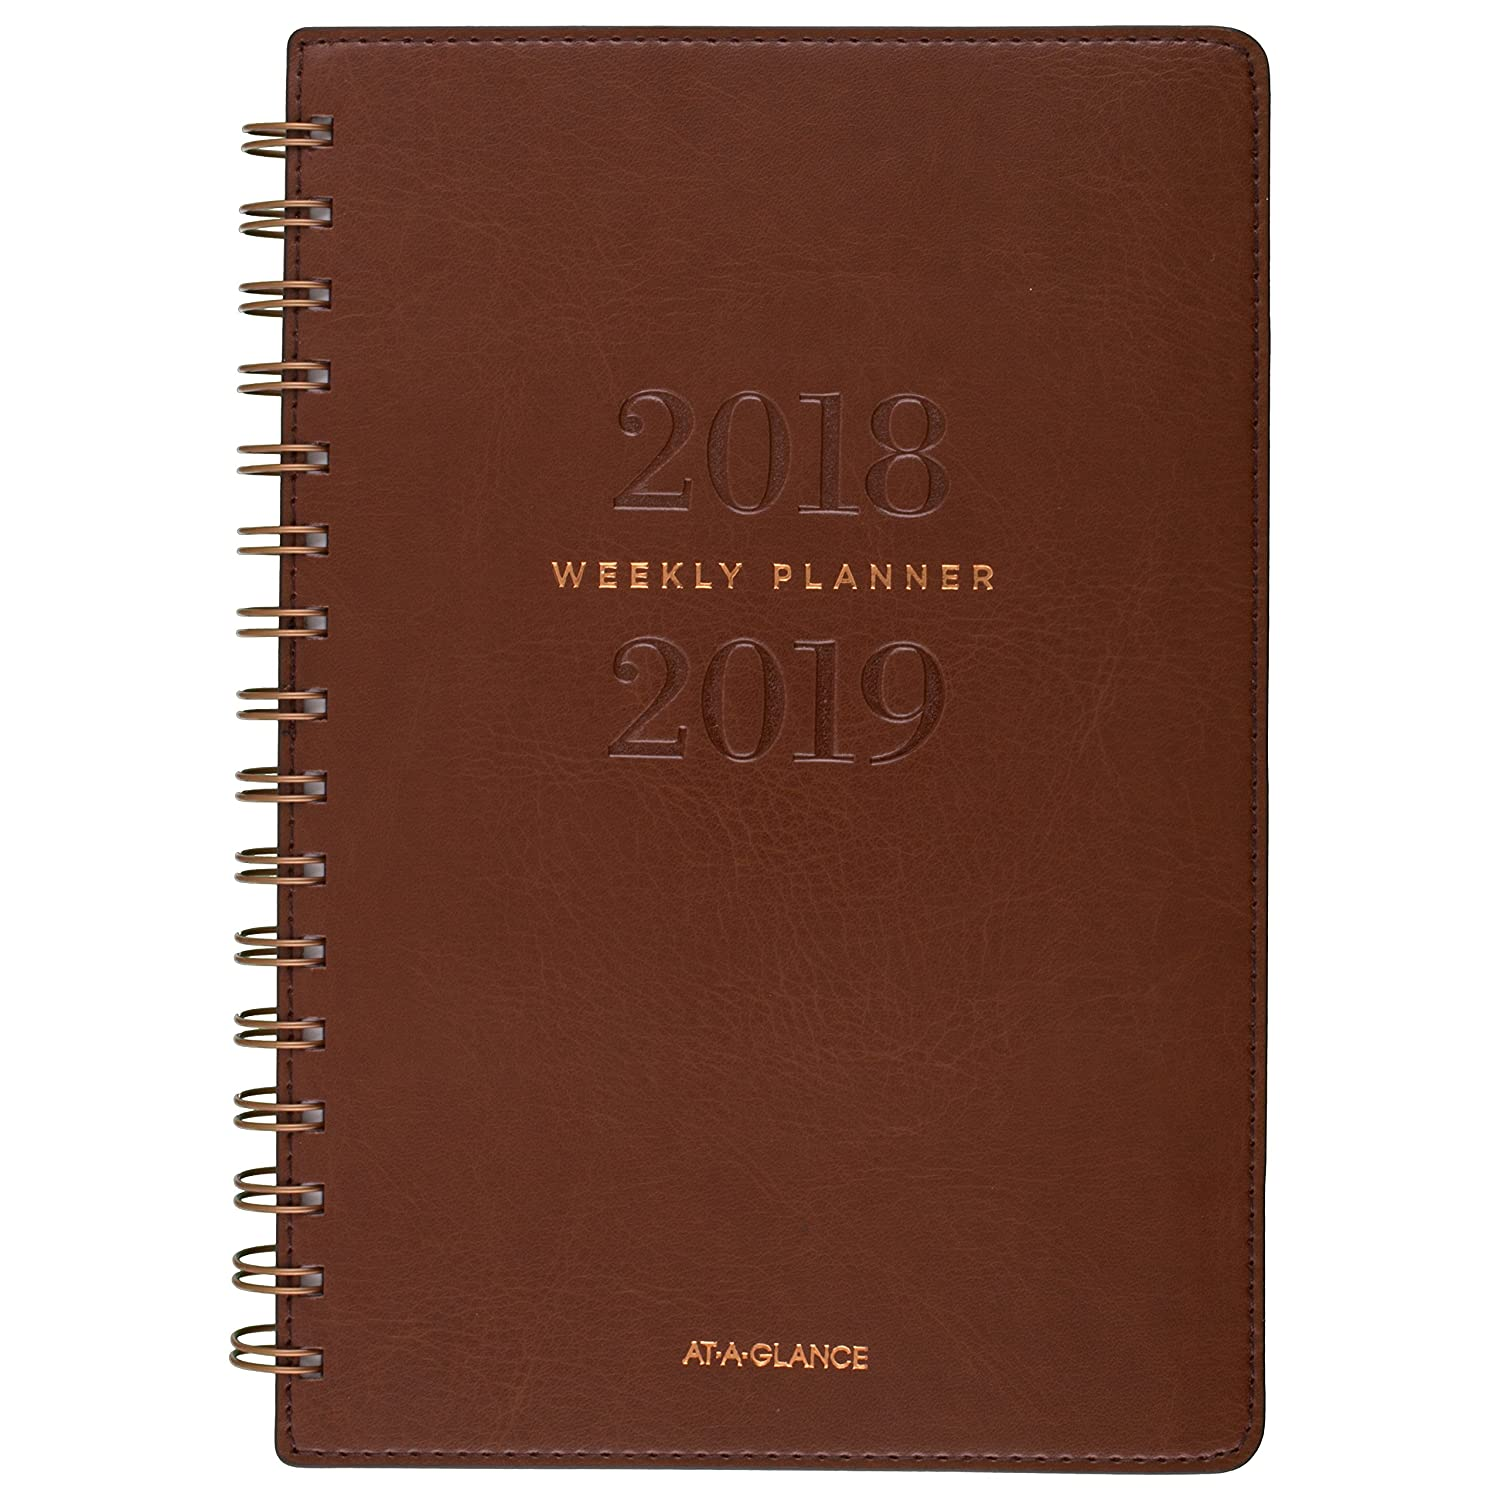 AT-A-GLANCE 2018/19 Signature Weekly and Monthly Academic Planner, July - June, 9-1/4 x 11-1/4 Inches, English, Brown Faux Leather Cover (YP900A-0919) Hilroy CA